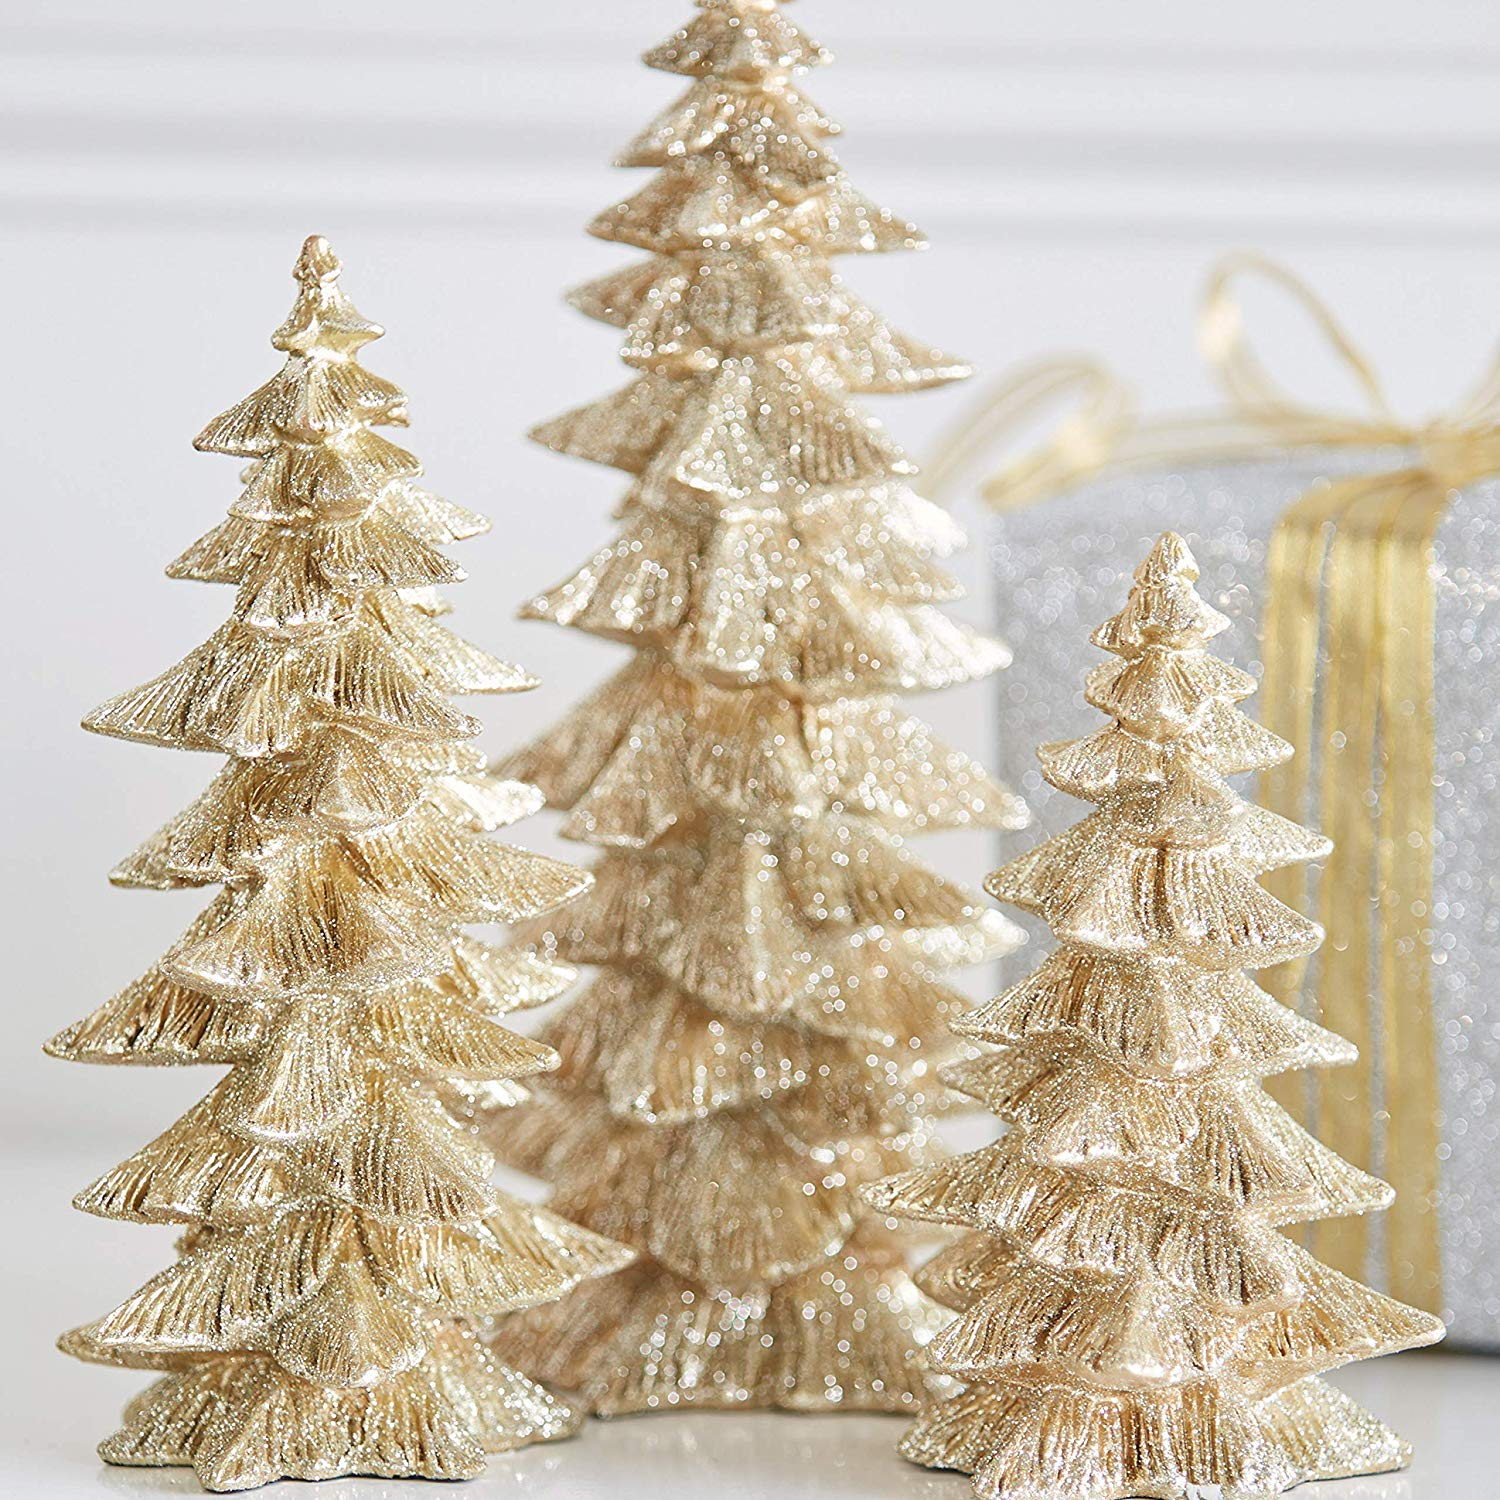 Set Of 3 Champagne Gold Glittered Christmas Trees 6 5 Inches To 9 5 I Richards Expo